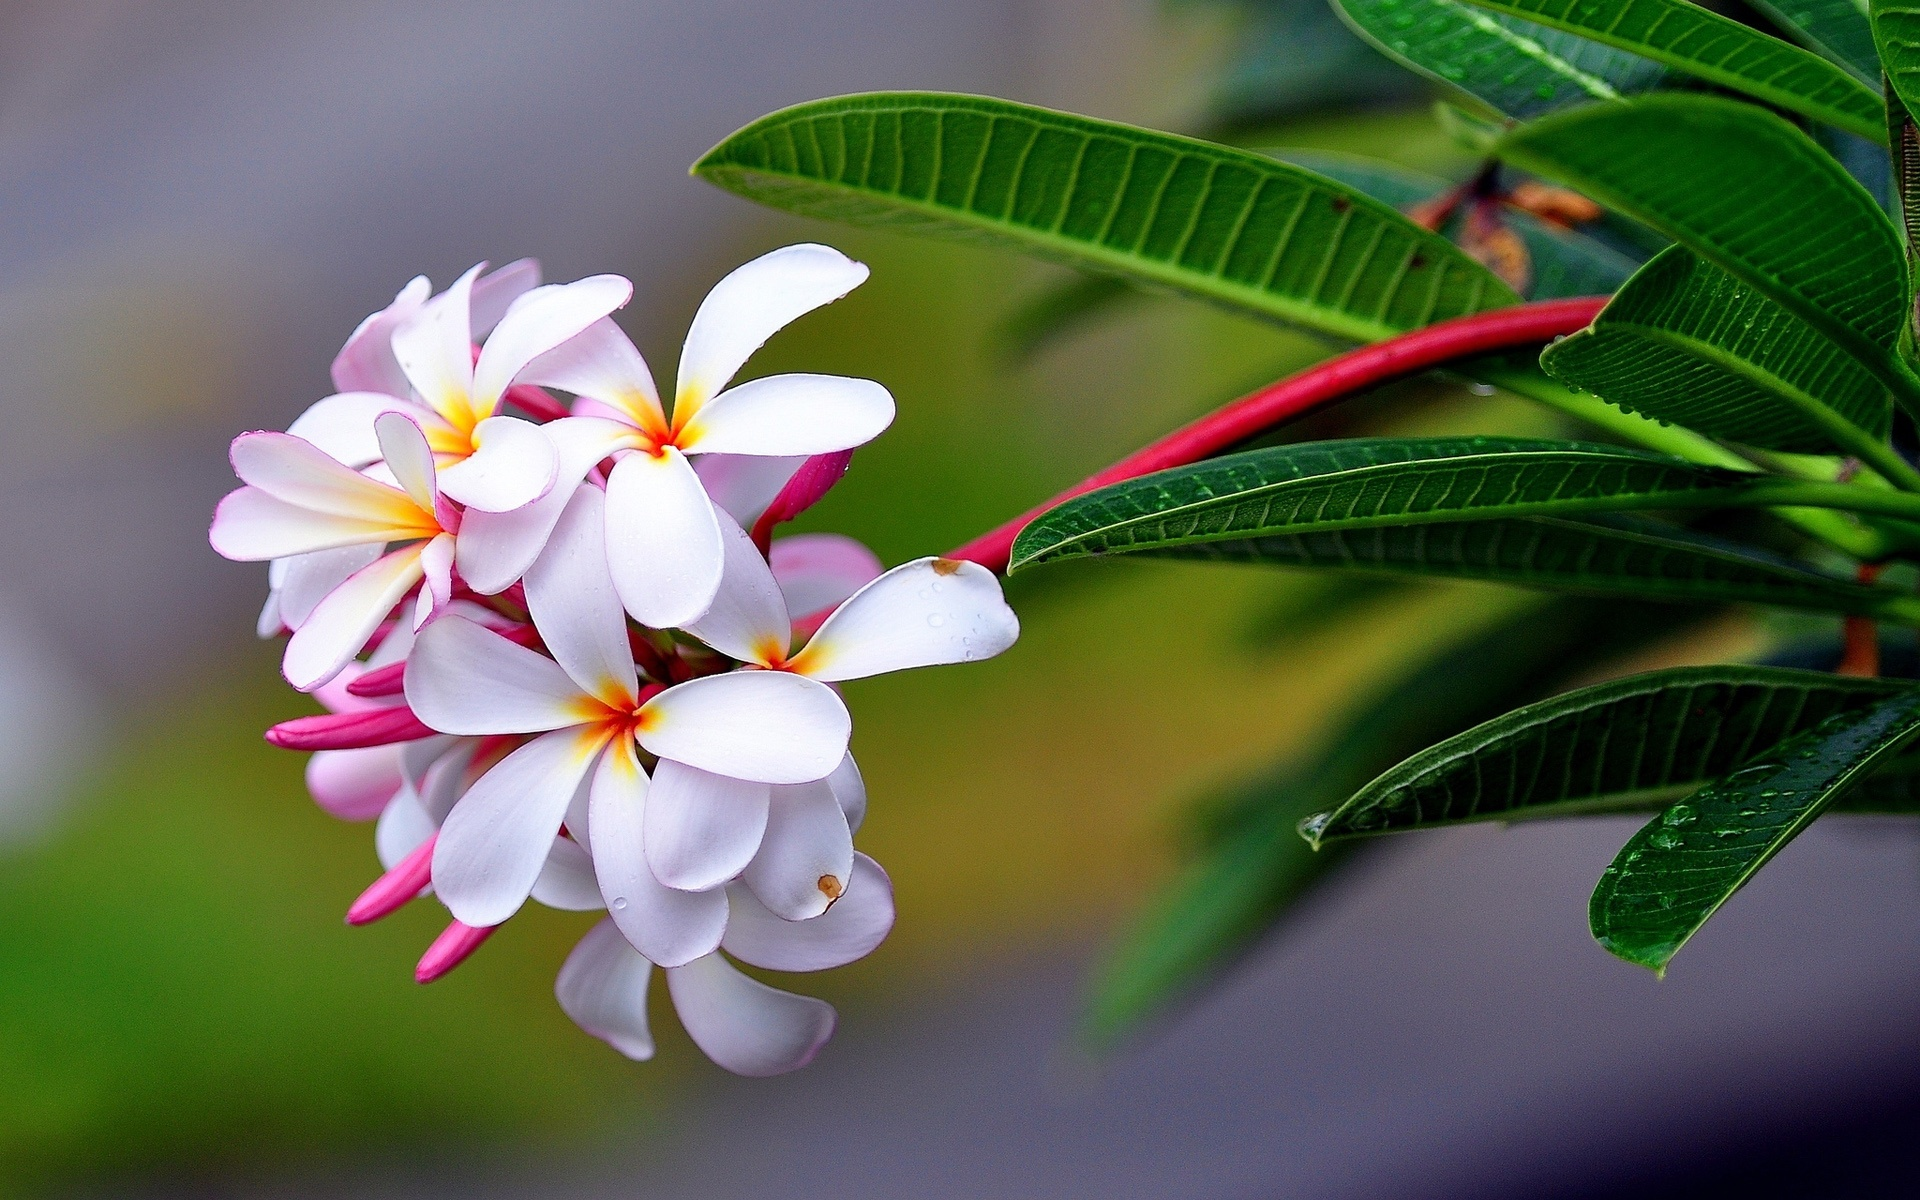 Wallpaper Plumeria Flowers Macro Photography 1920x1200 Hd Picture